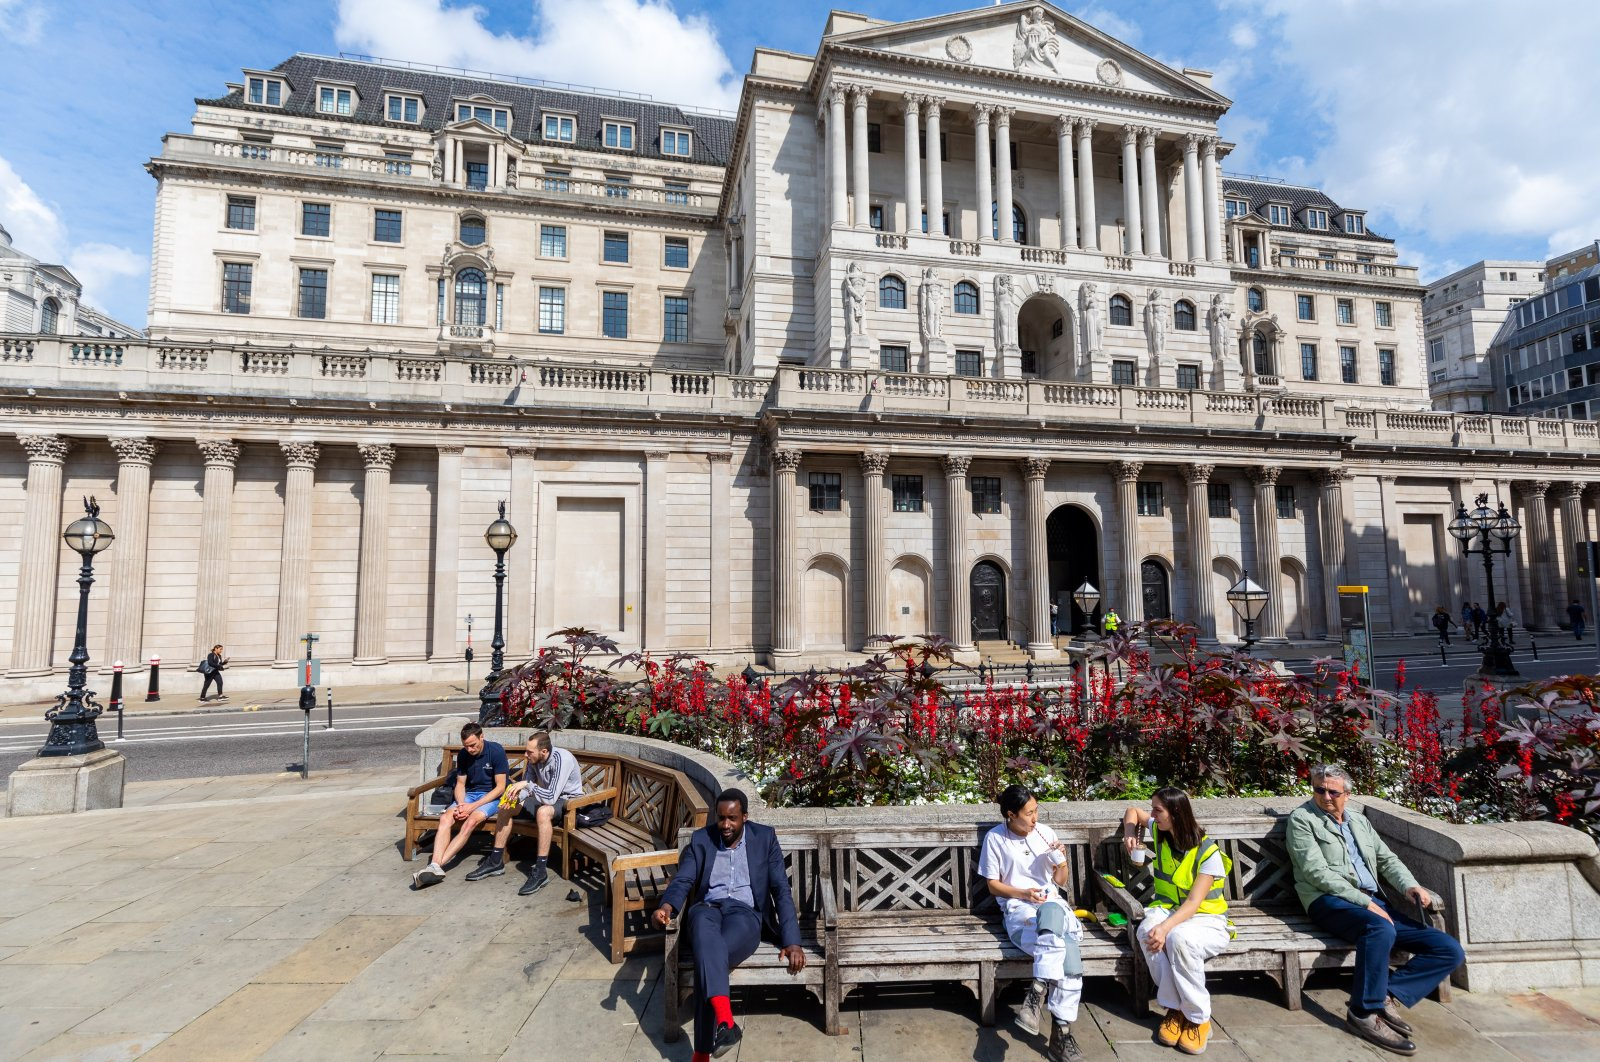 People sit in front of the Bank of England in London, U.K., Aug. 4, 2021. (EPA Photo)